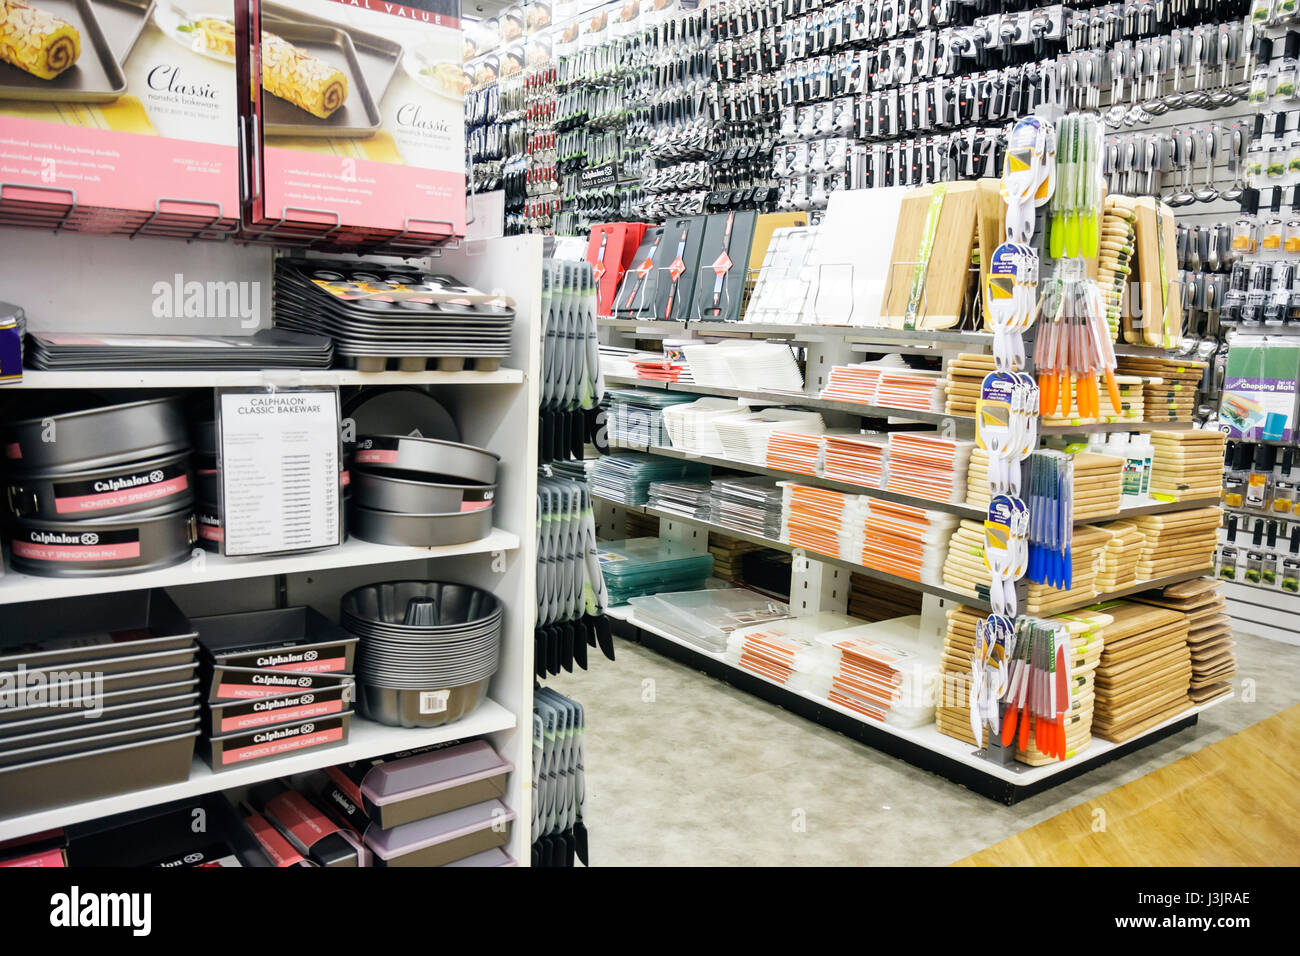 Miami Florida Dadeland Bed Bath and Beyond house wares household ...